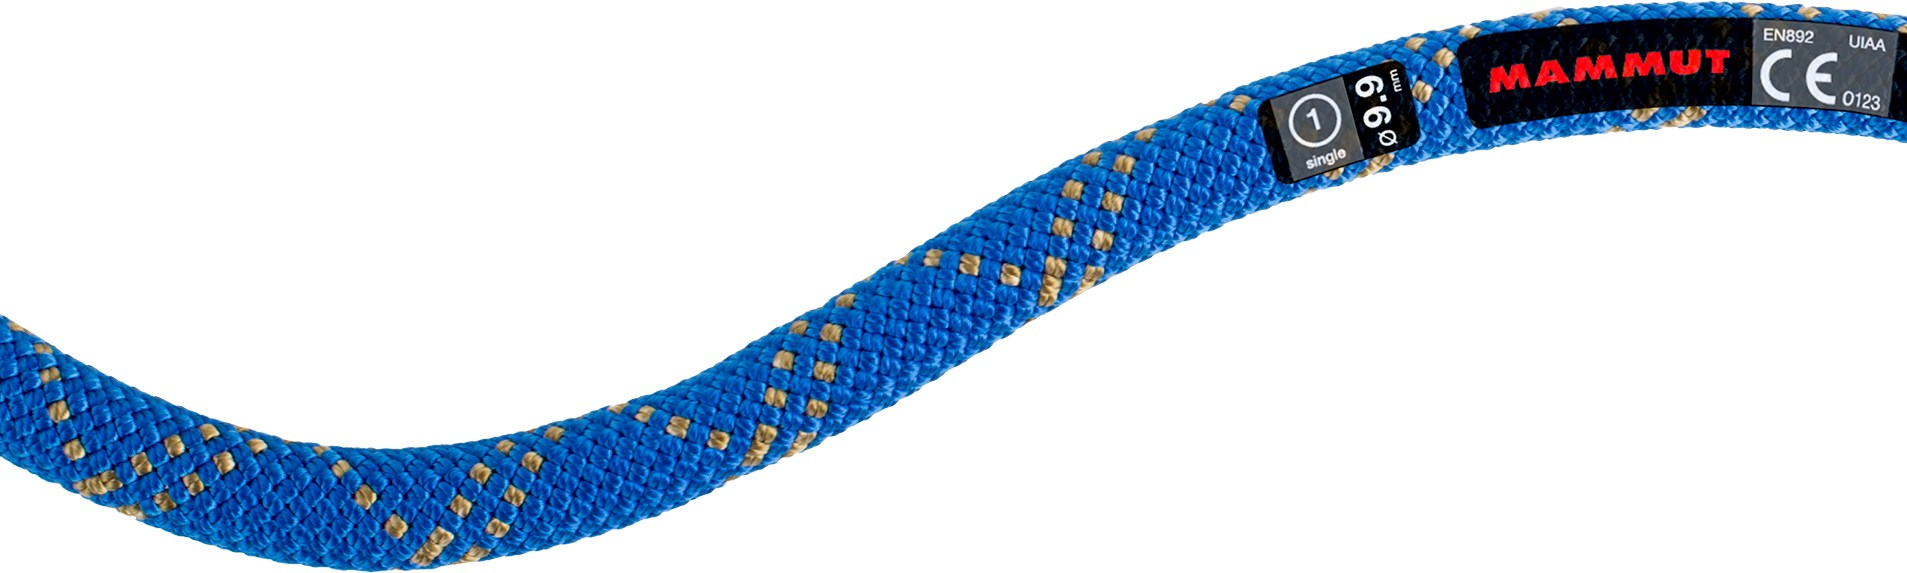 Mammut Gym Classic 9.9mm x 40m Non-Dry Rope